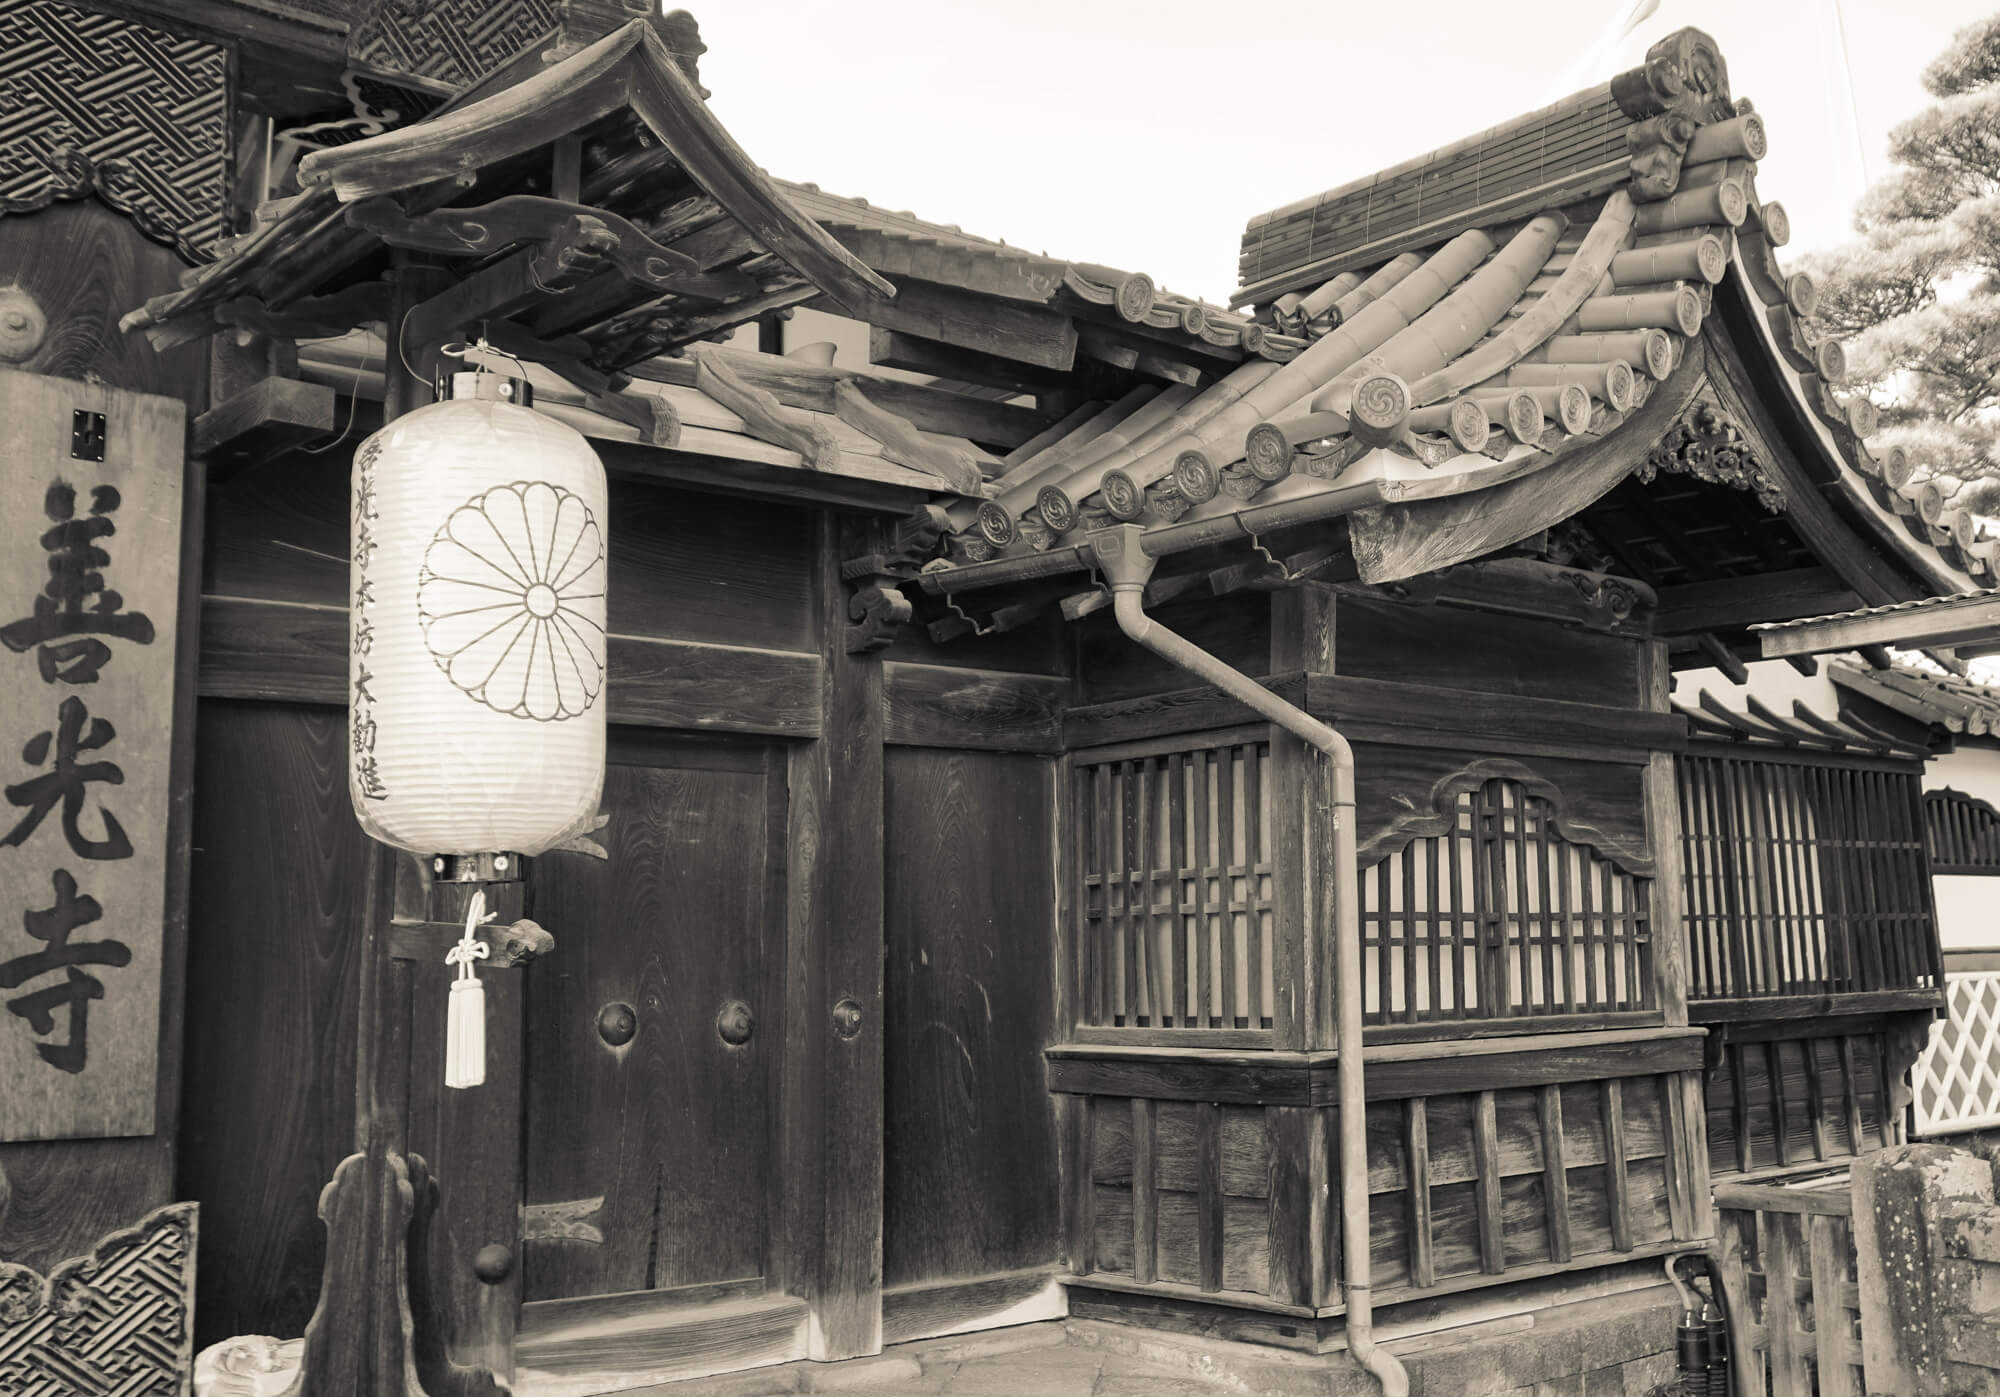 A TRADITIONAL BUILDING IN THE ZENKO-JI BUDDHIST TEMPLE COMPLEX